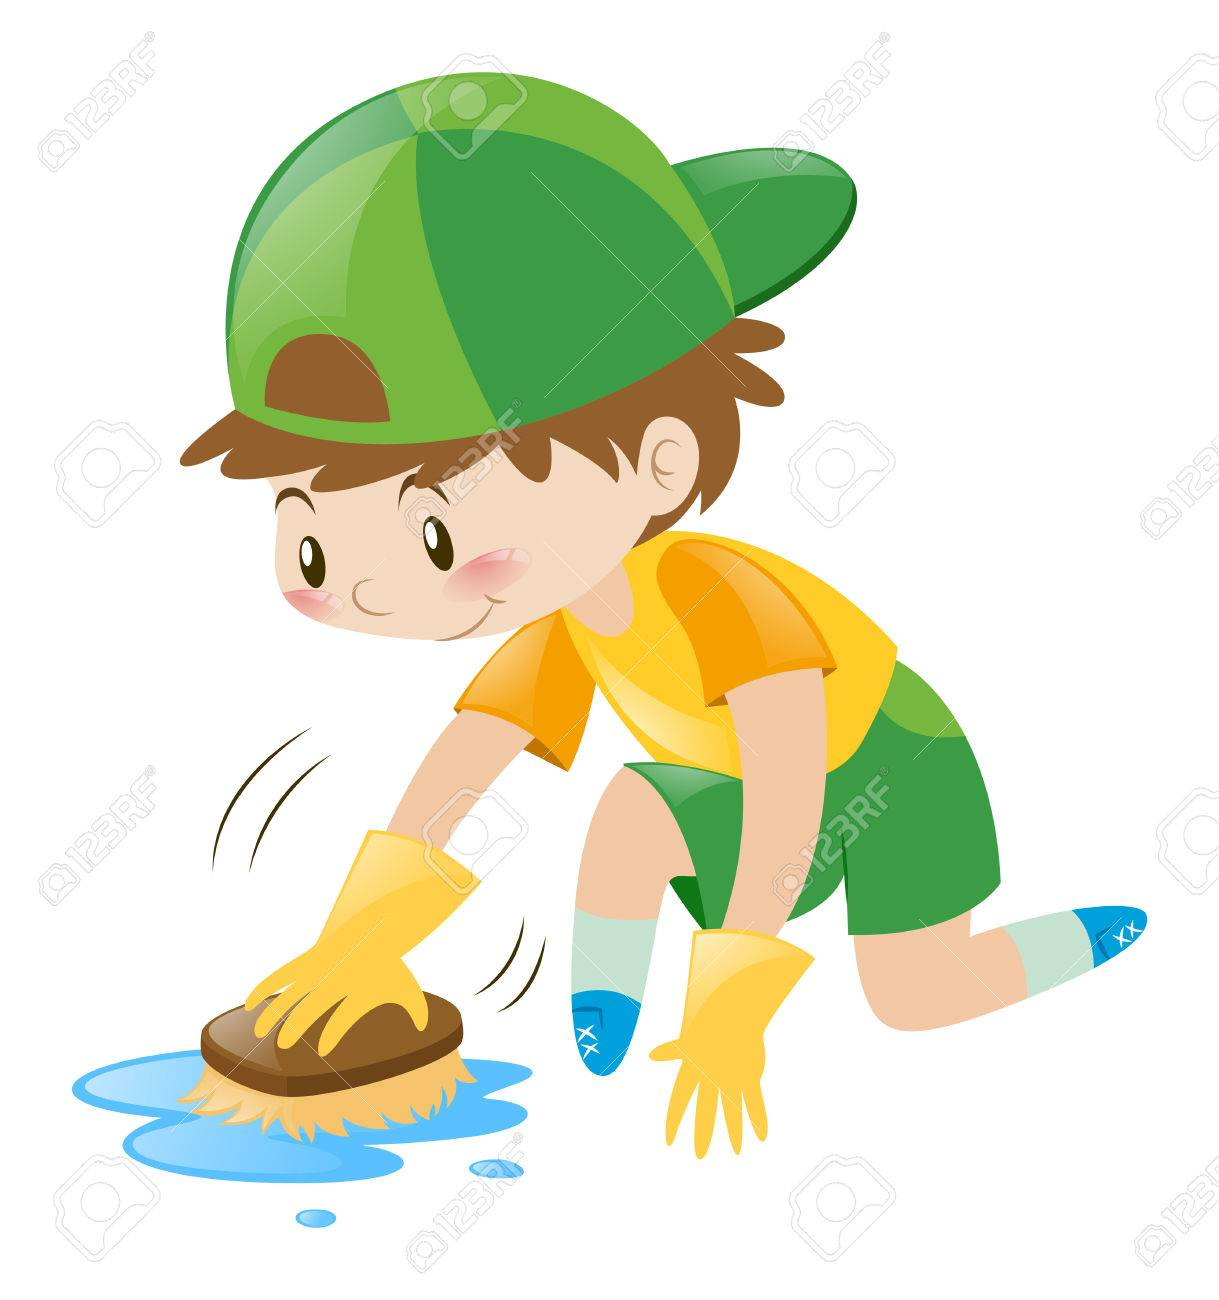 Boy cleaning the floor with brush illustration.